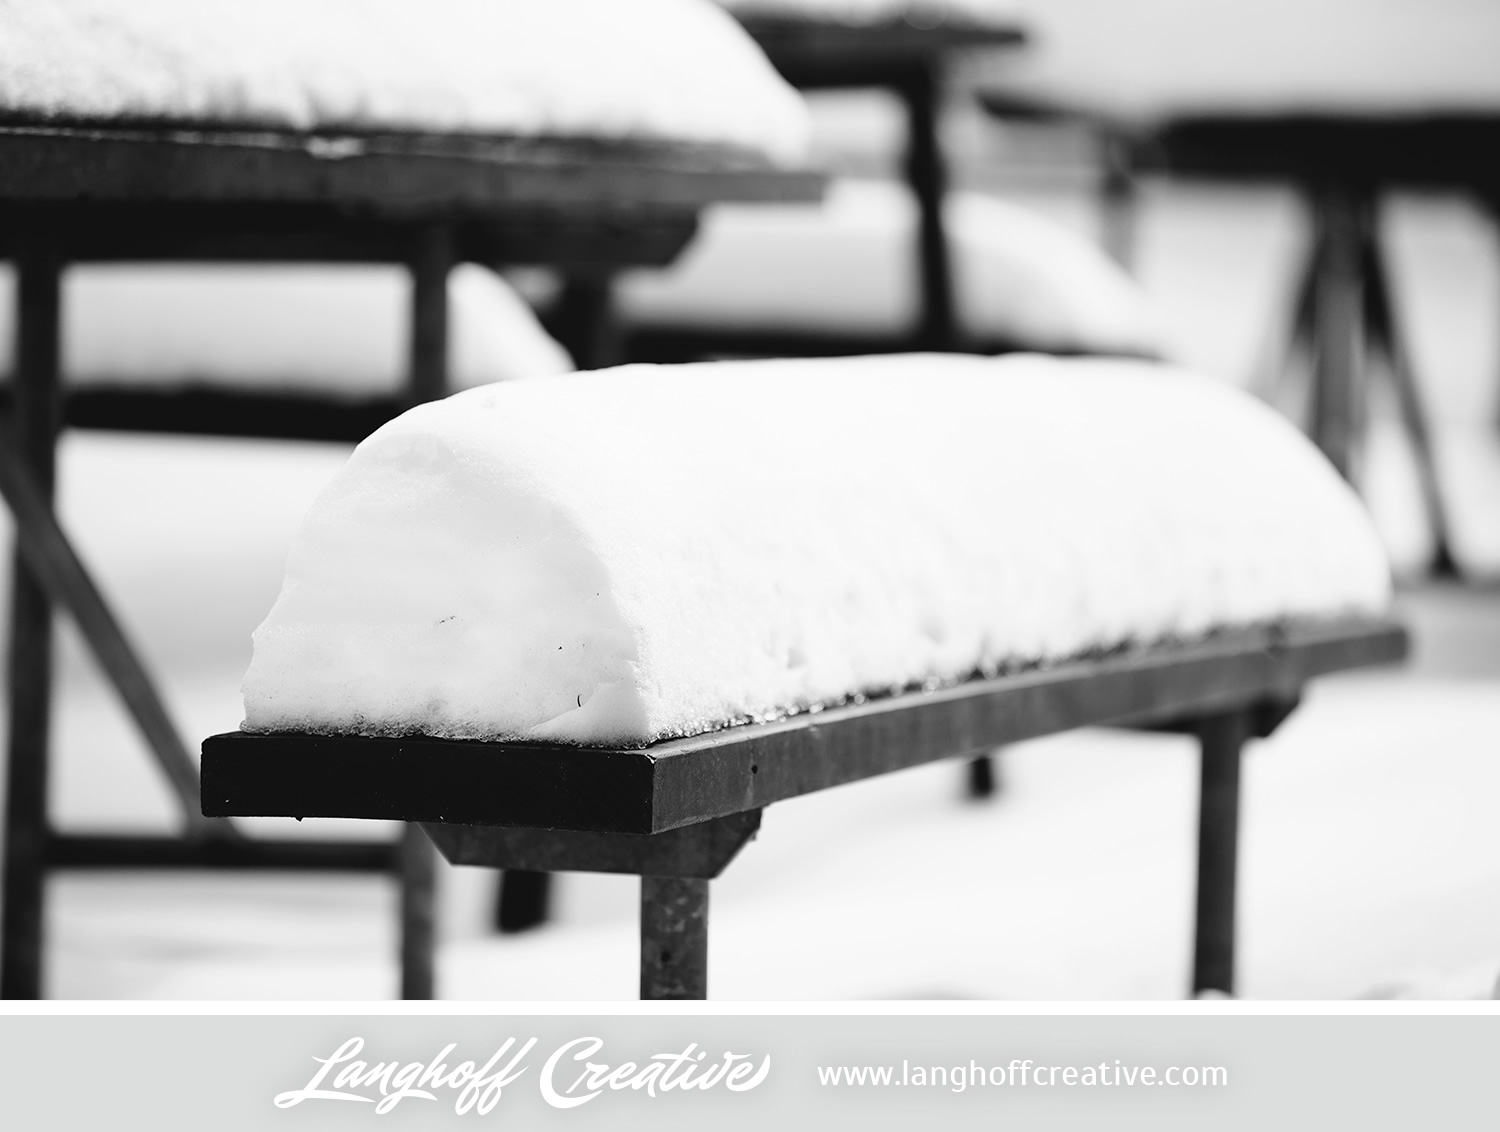 LanghoffCreative-20130308-winter6-image.jpg